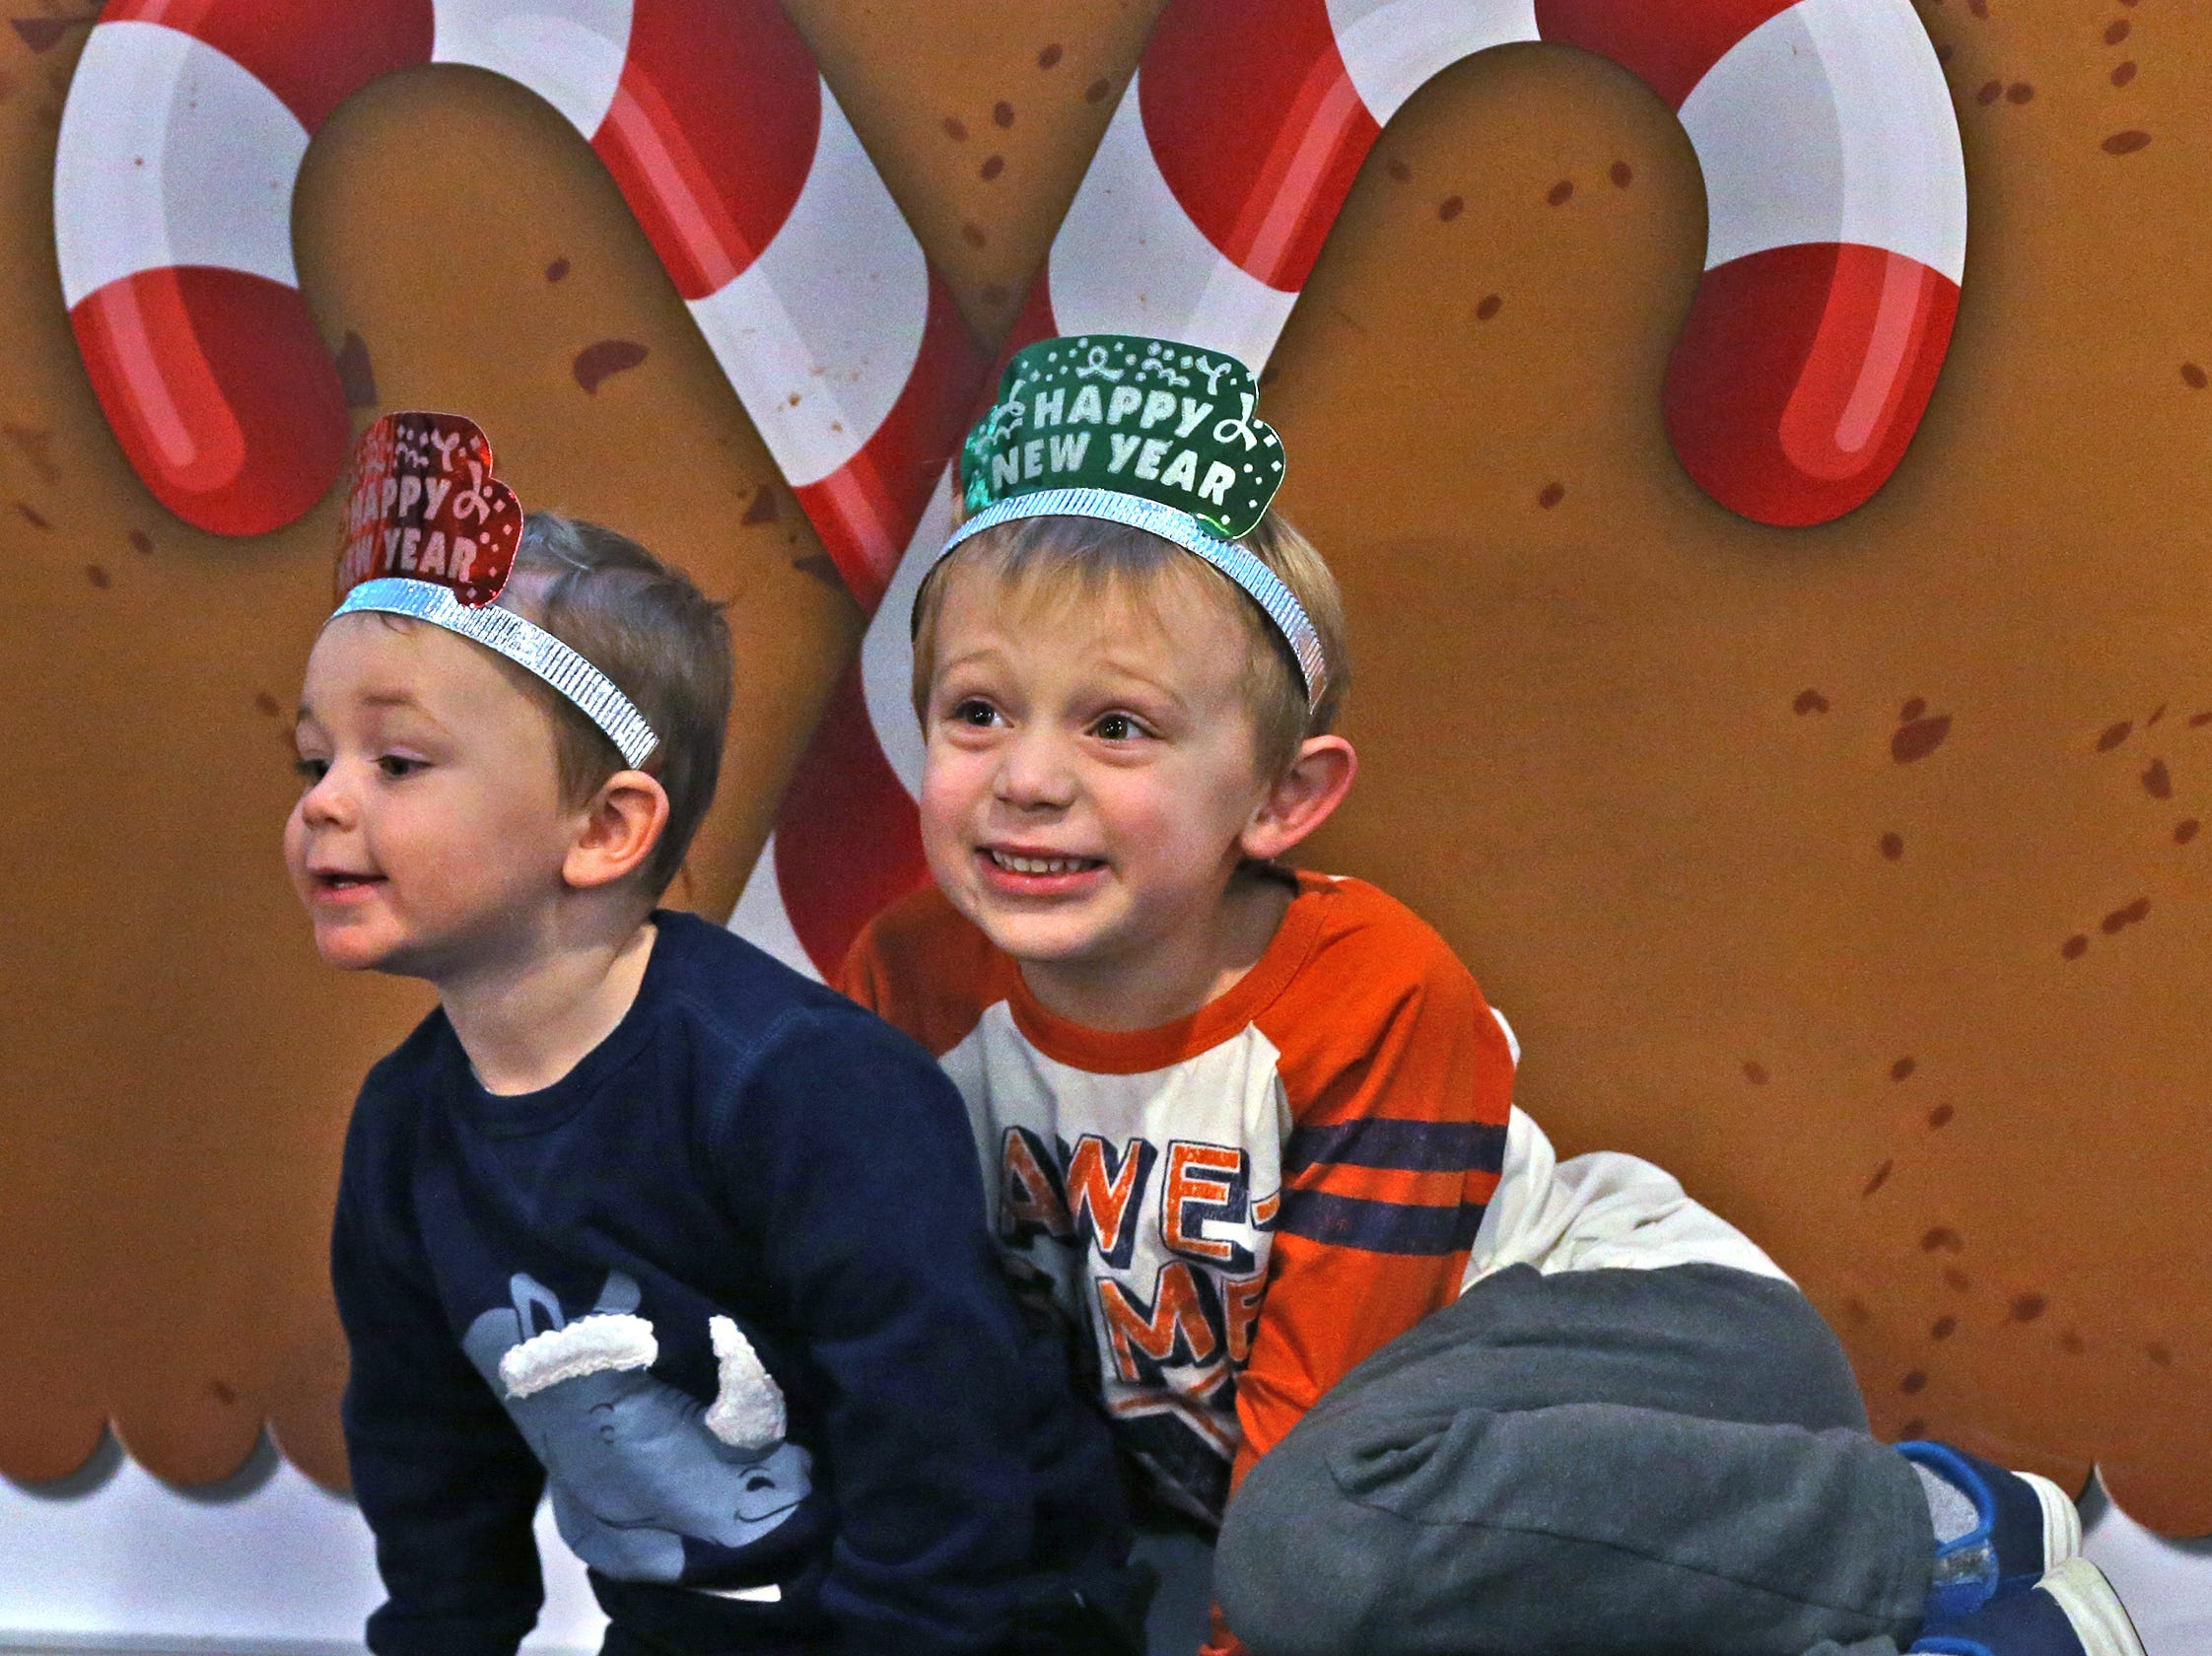 Ellis, left, and Gibson Binder pose by a holiday mural for photos taken by their parents, at the Countdown to noon celebration at the Children's Museum of Indianapolis, Monday, Dec. 31, 2018.